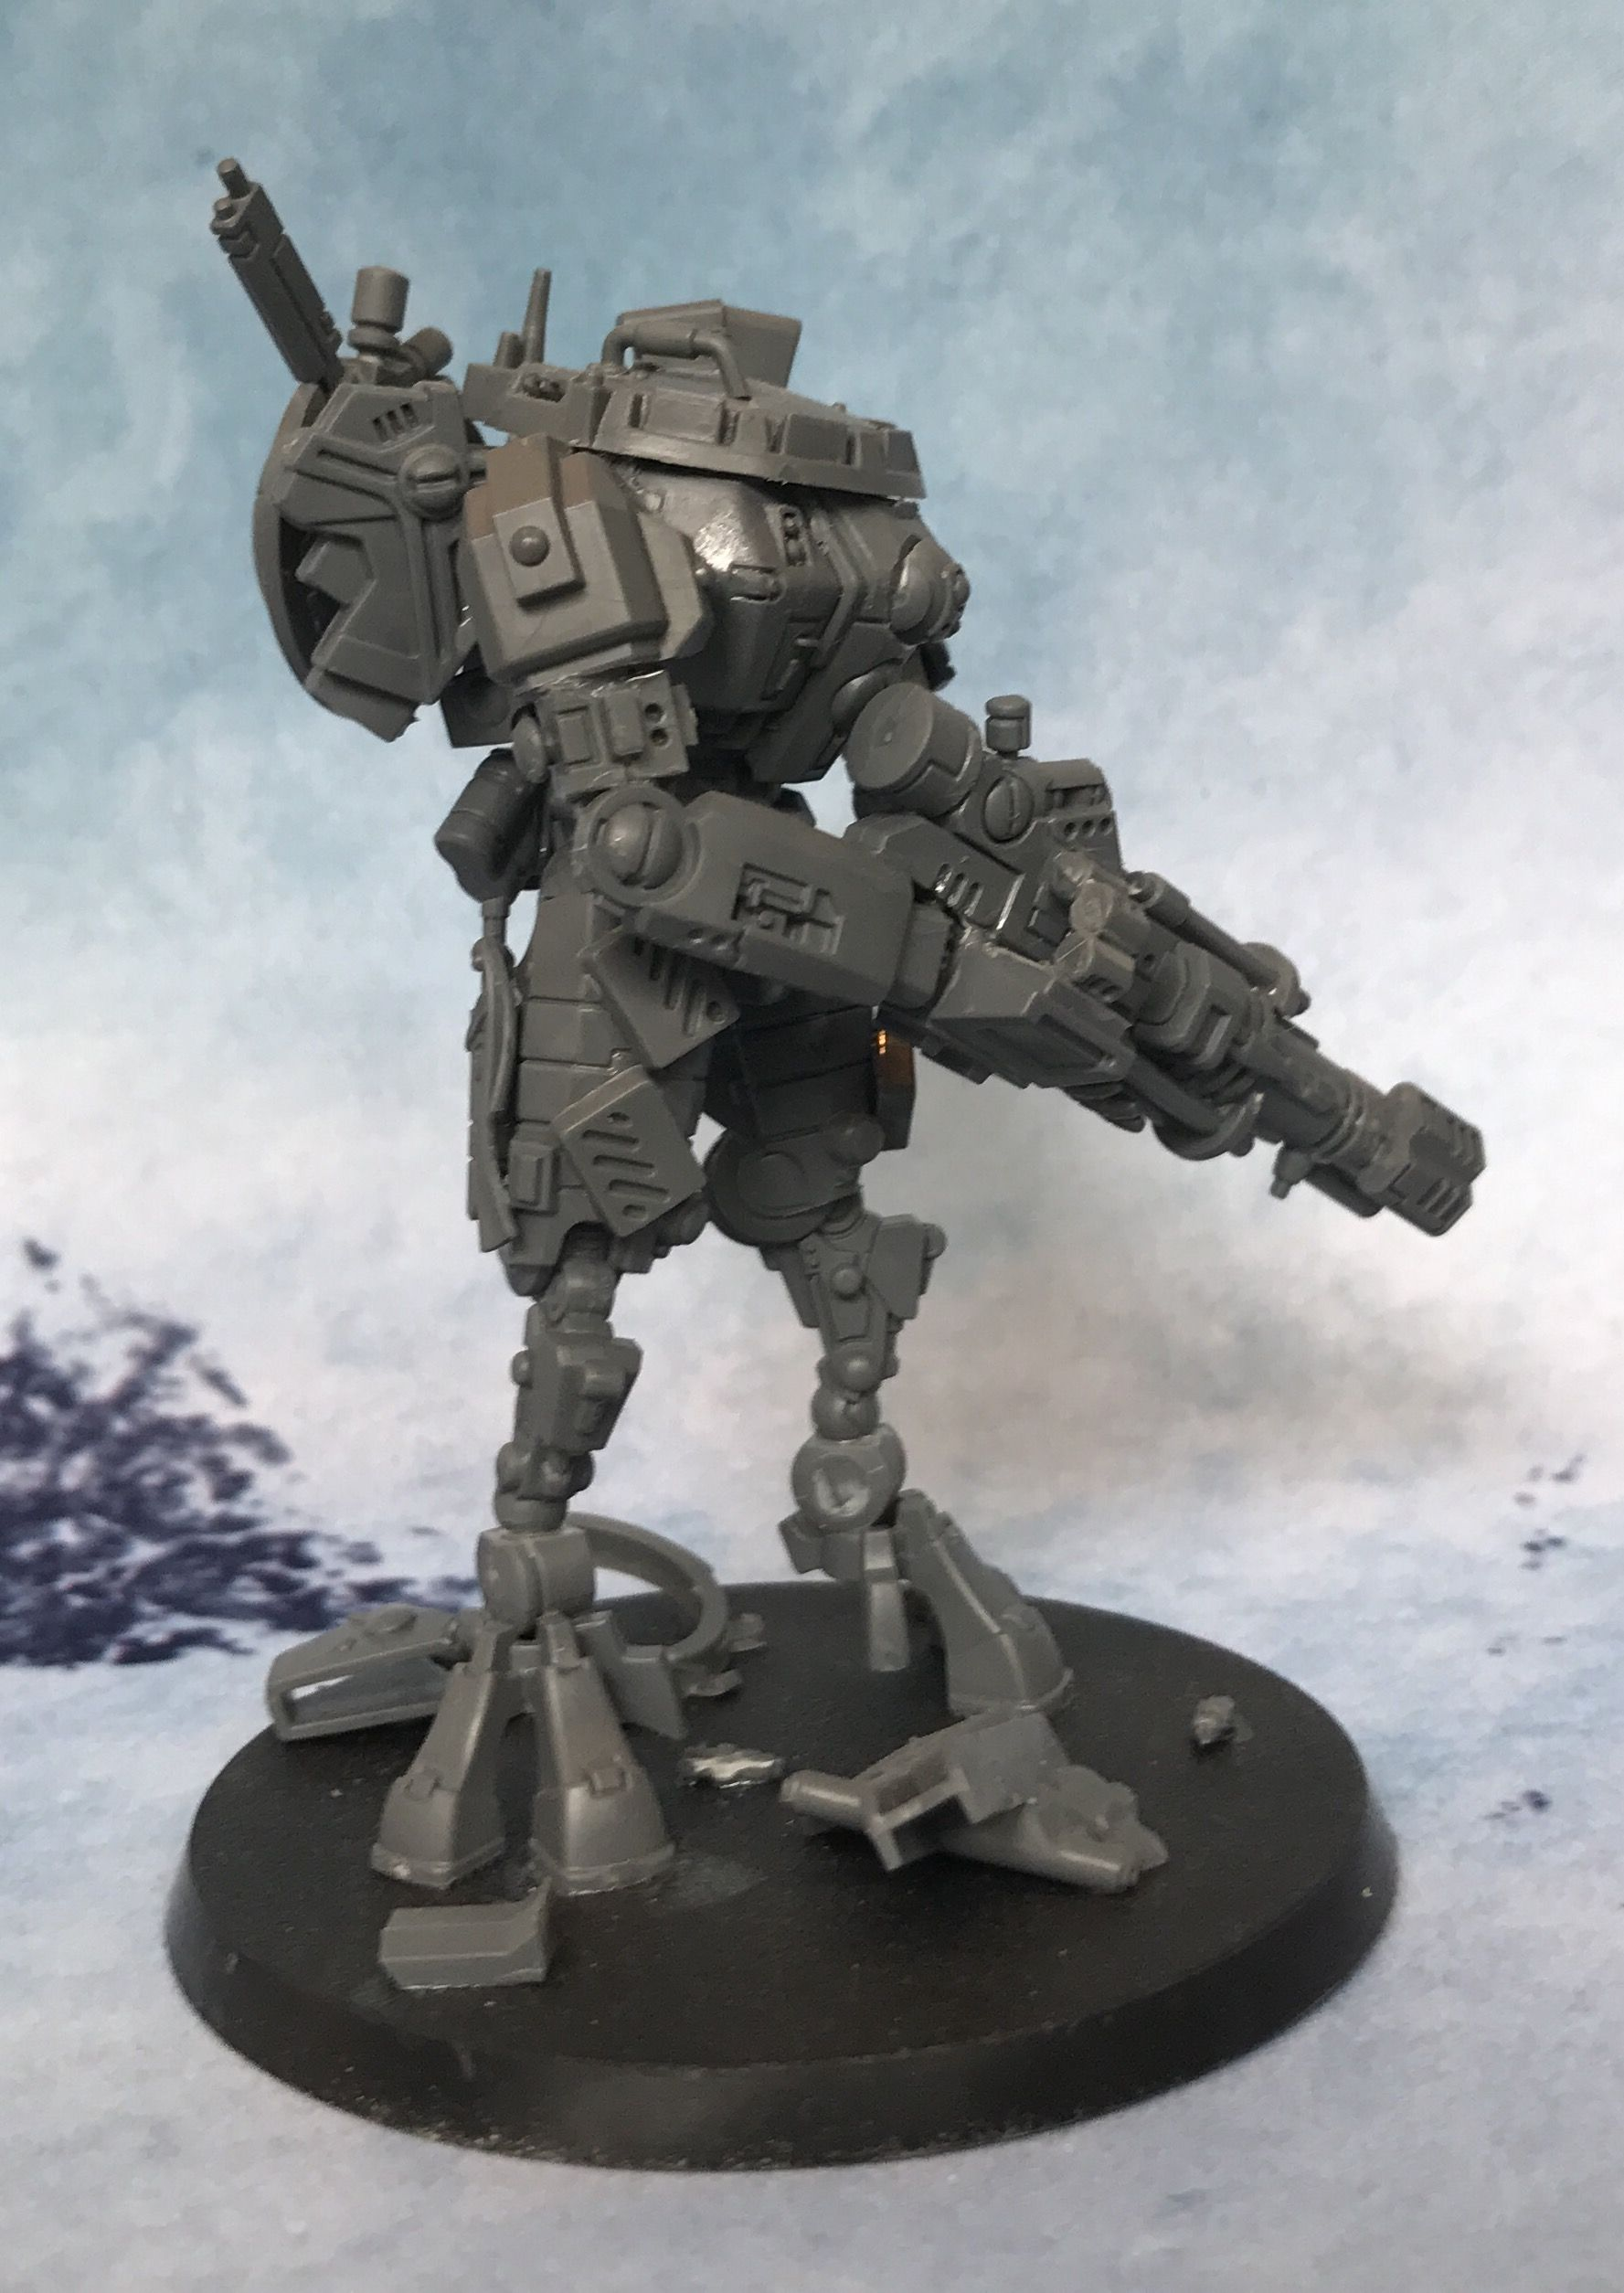 Experimental Tau empire battlesuit modeled to look like a Titanfall ...